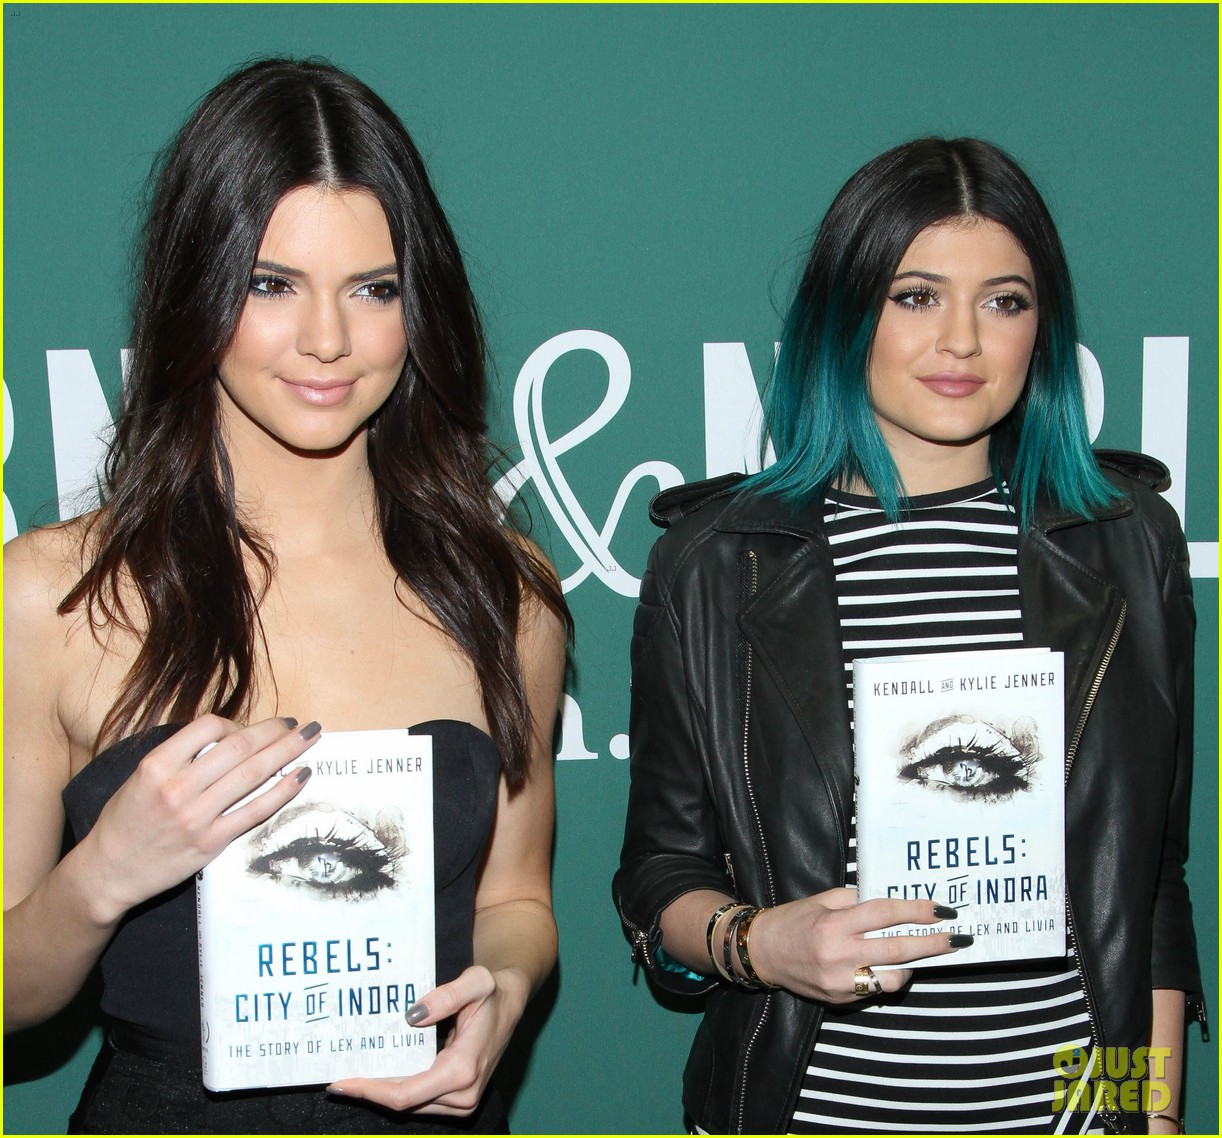 Kylie jenner coupon code